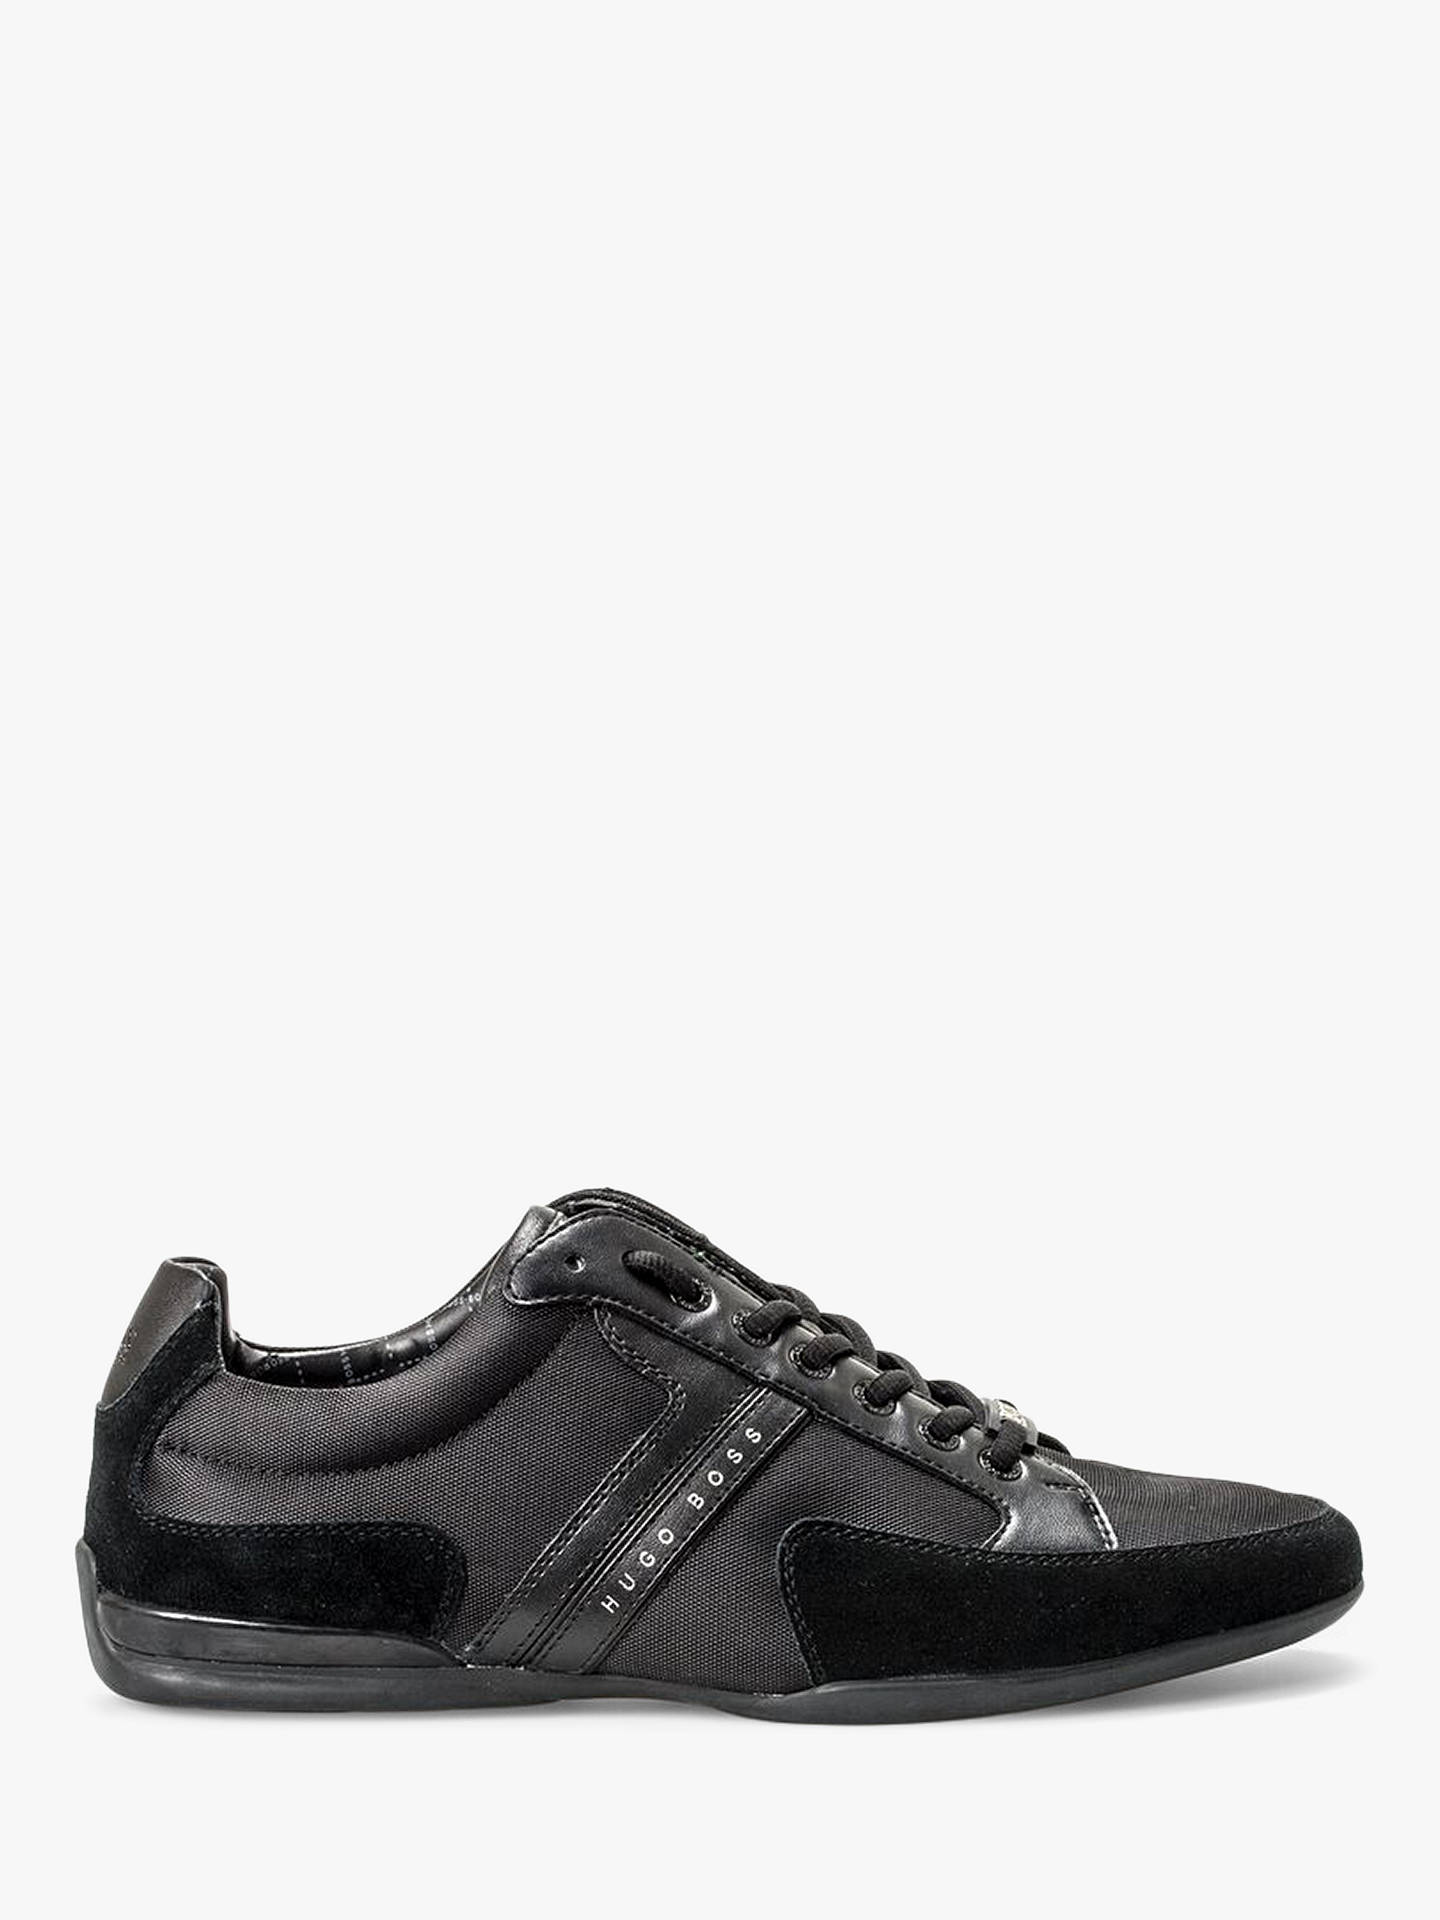 BuyHUGO BOSS Spacit Trainers, Black, 7 Online at johnlewis.com